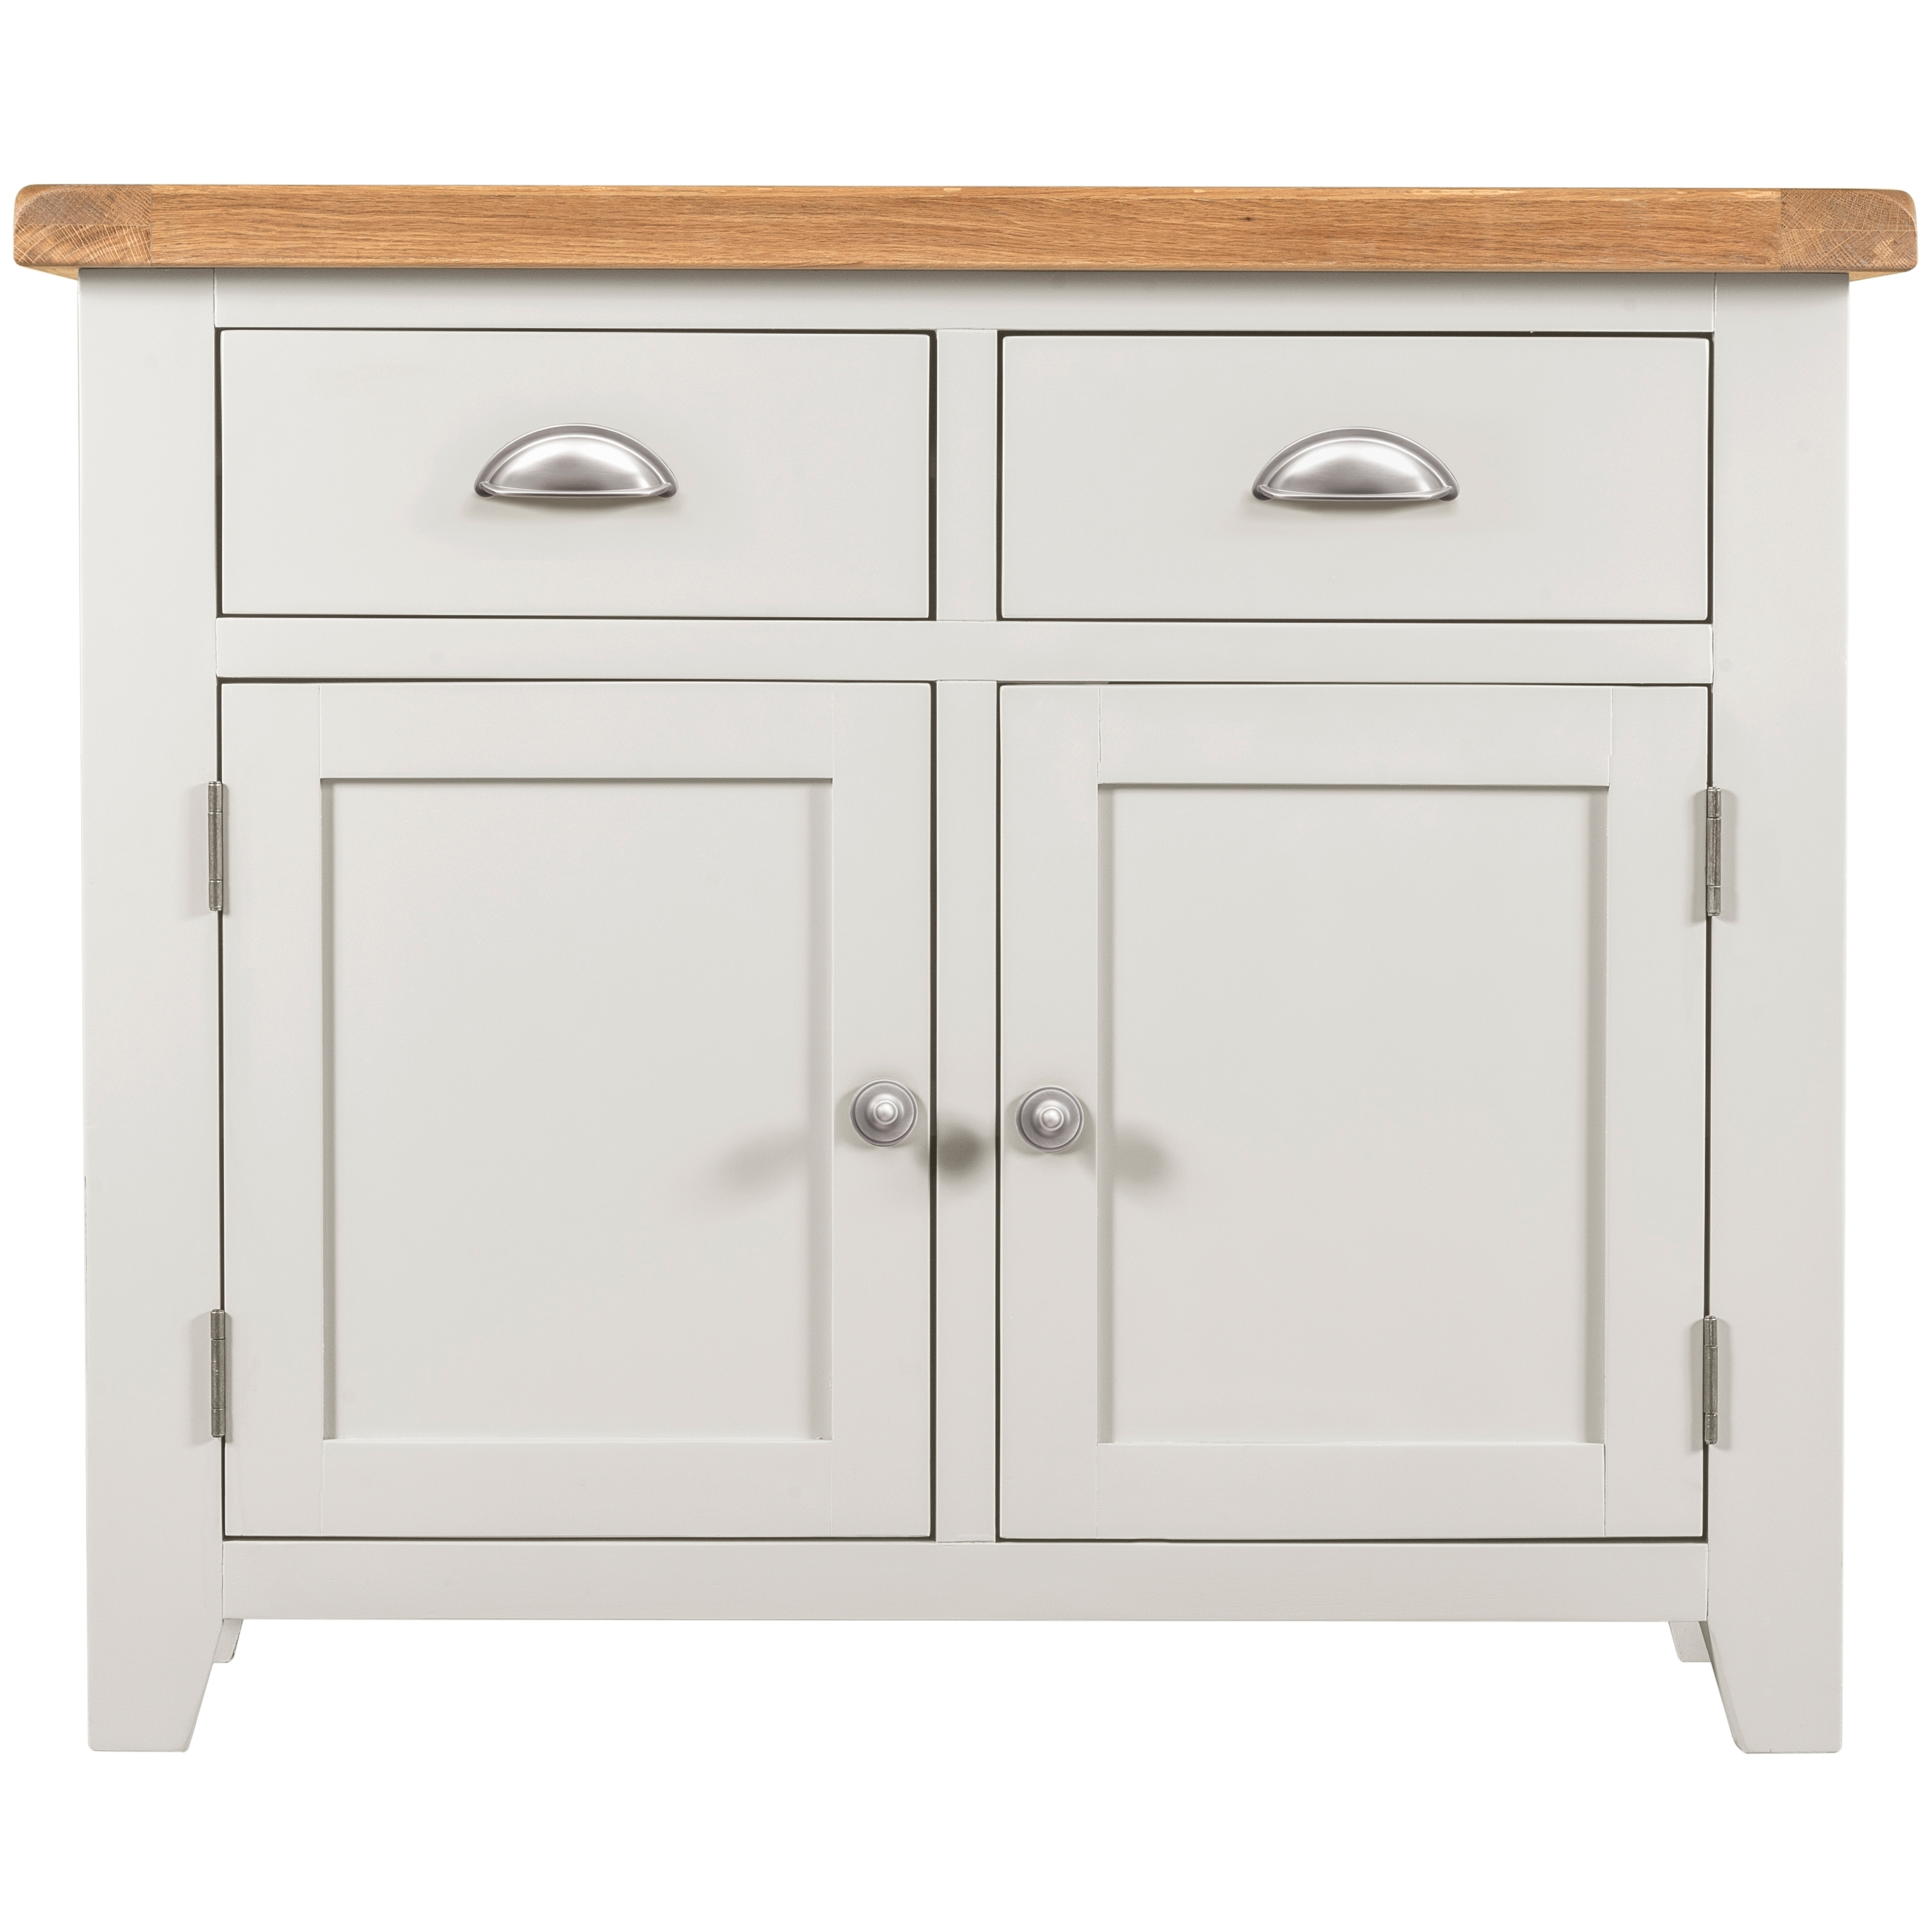 Willow White 2 Door 2 Drawer Sideboard | The Haven Home Interiors Regarding 2 Drawer Sideboards (Photo 8 of 30)